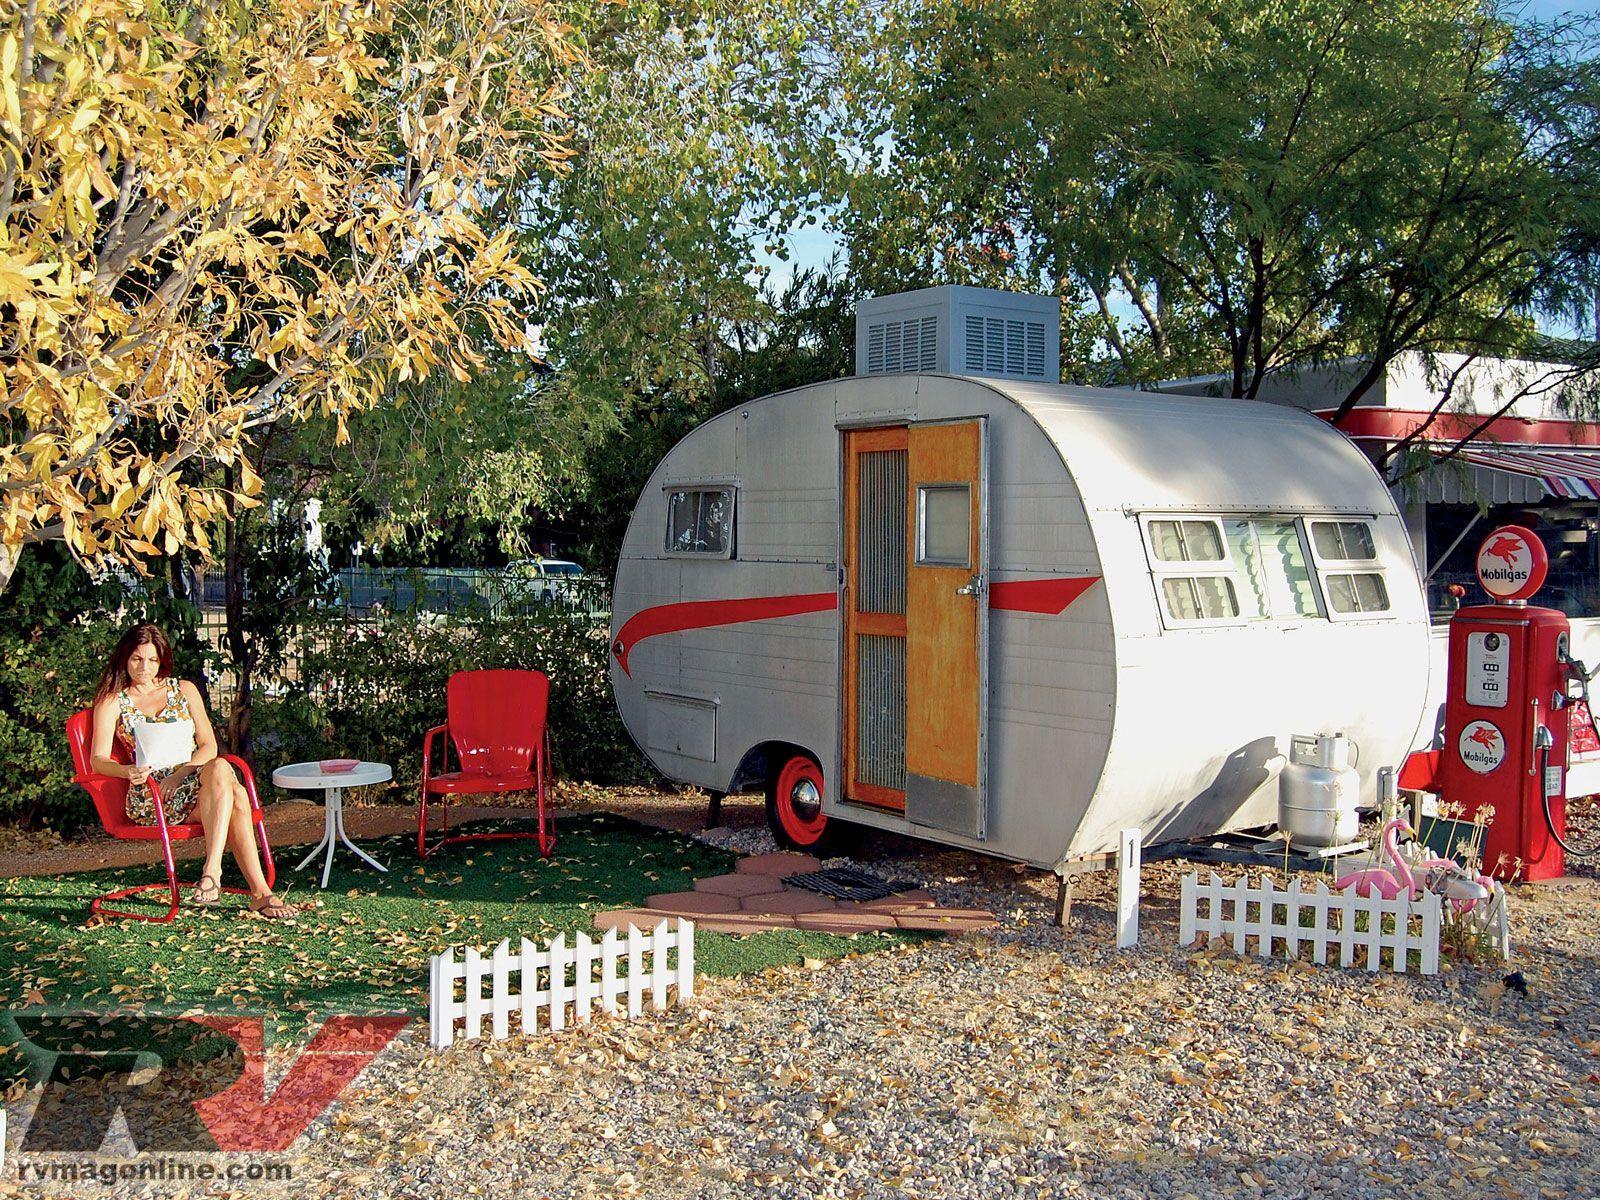 Shady Dell Vintage Trailer Resort - Bisbee, AZ - Kick back to the 50s with vintage Airstream trailers to stay overnight in, 50s restaurant, and more.